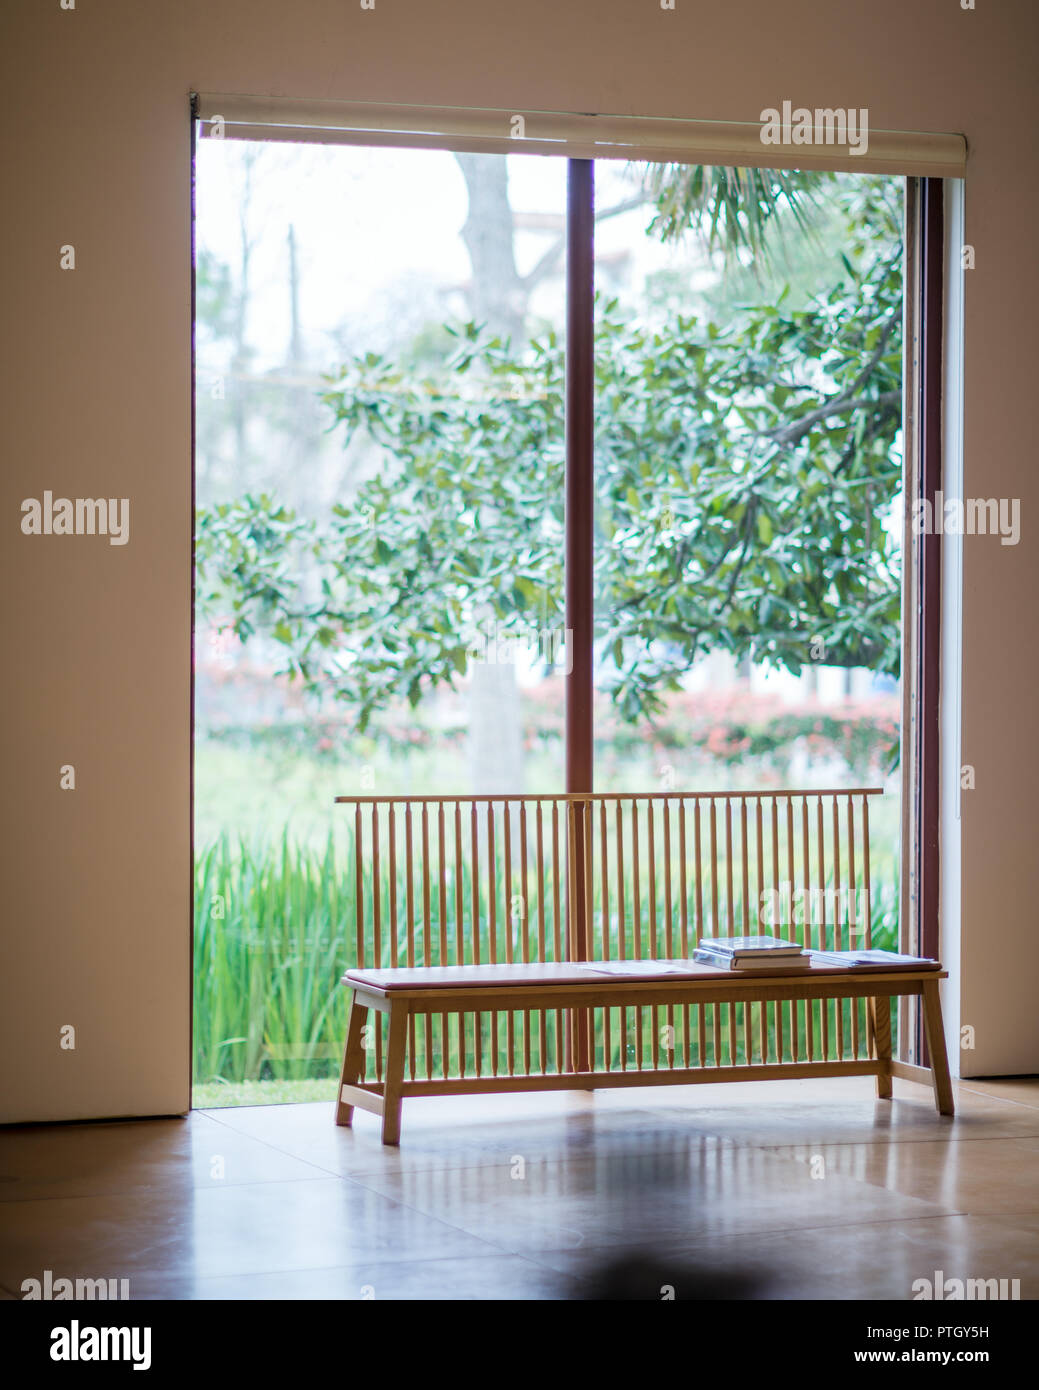 Bench seat at window in Houston gallery of Hiram Butler  - permission required - Stock Image